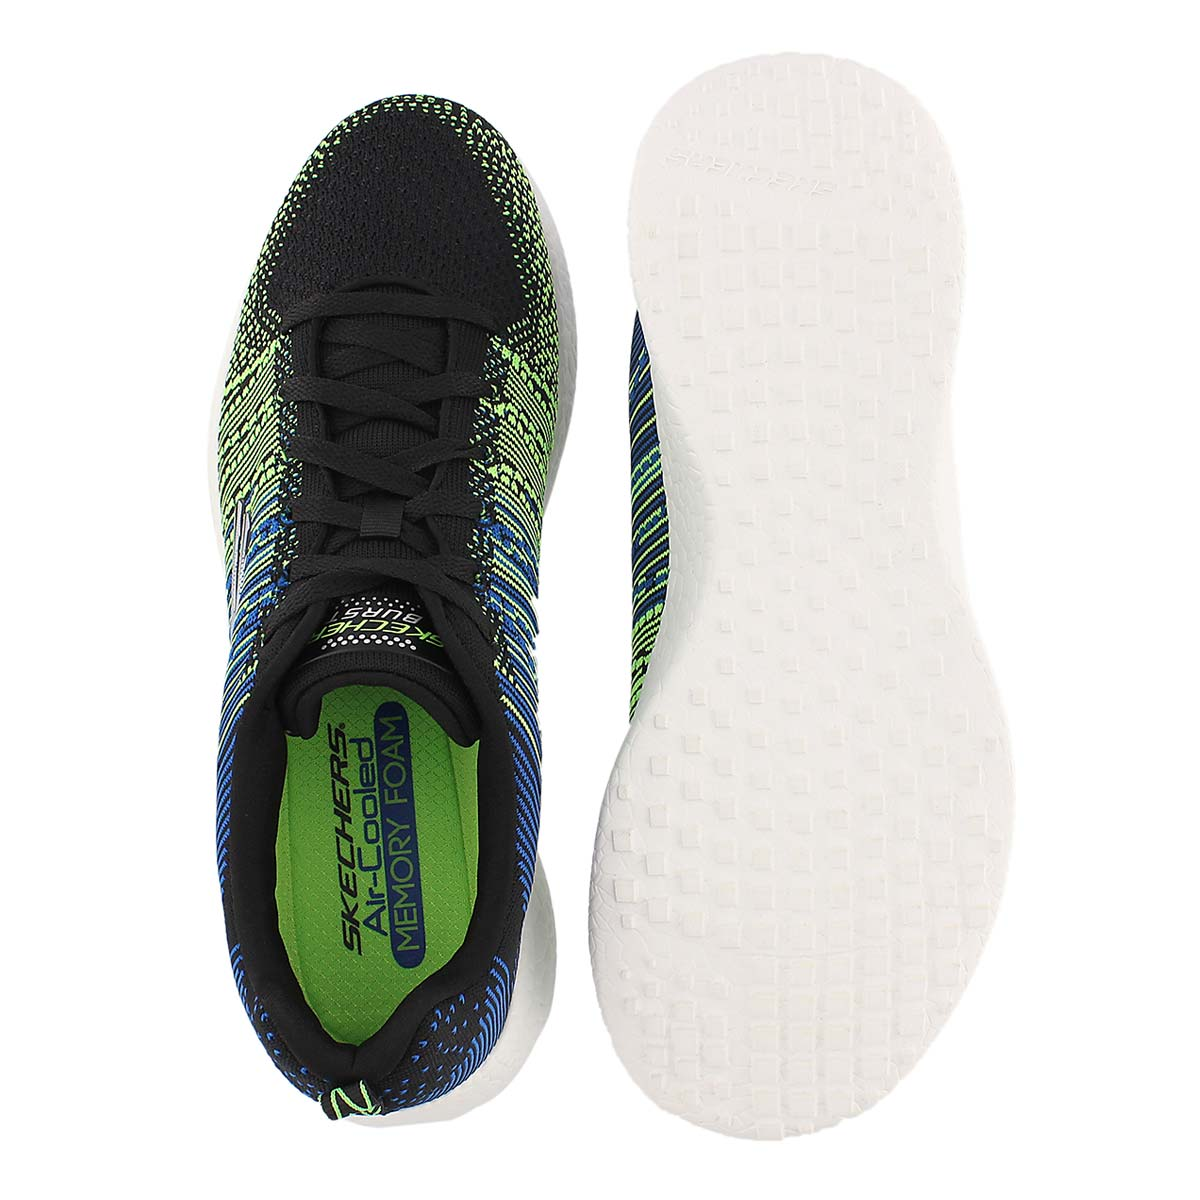 Mns Burst-In The Mix blk running shoe